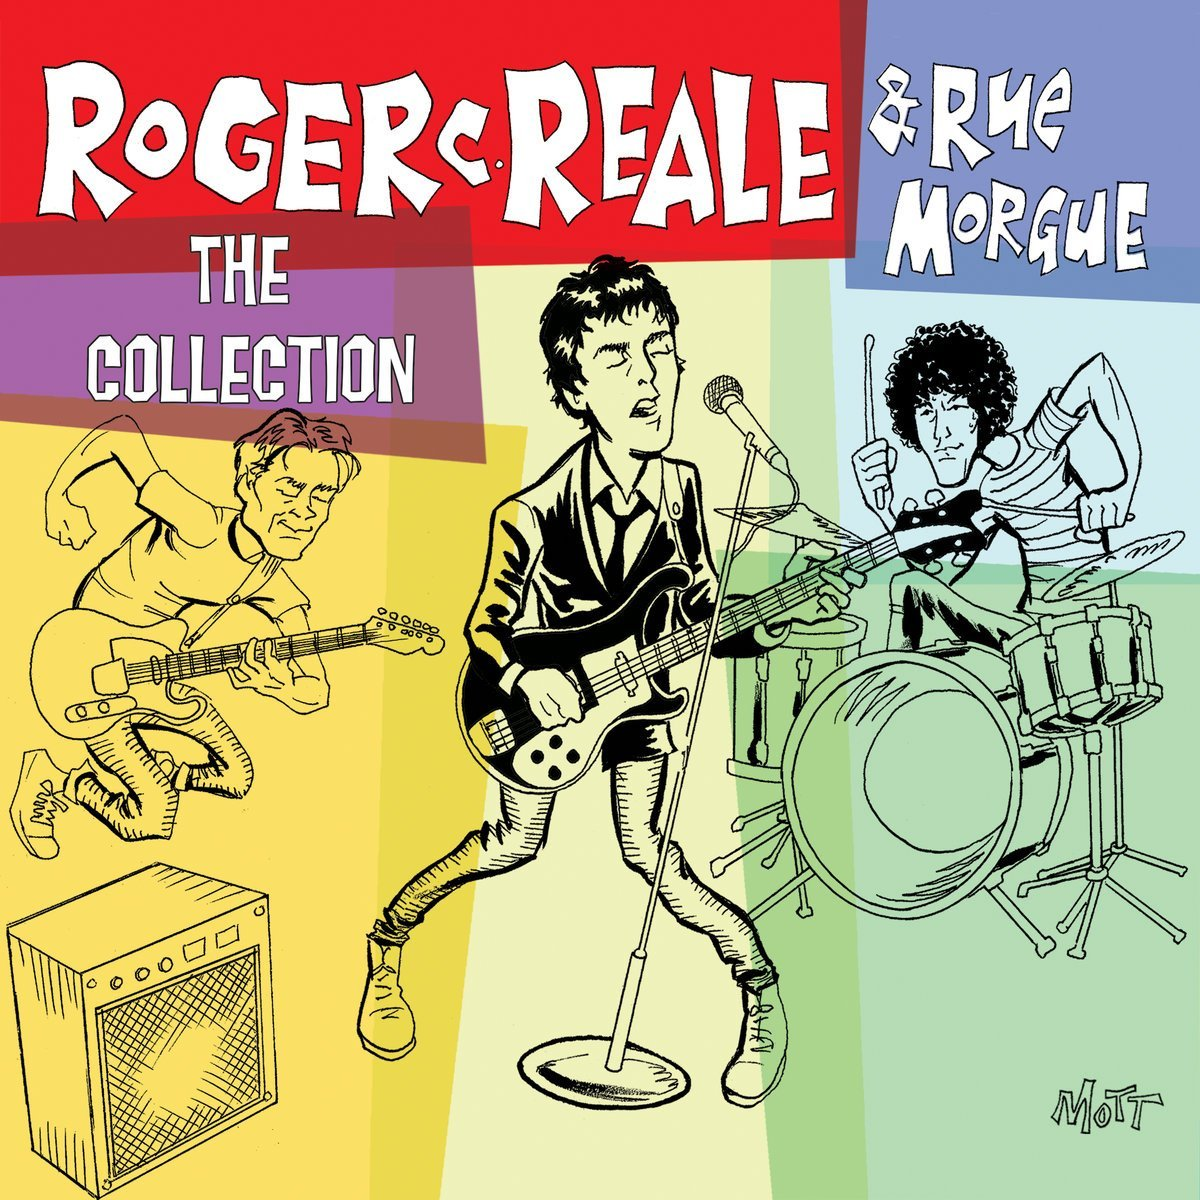 CD cover of Roger C. Reale & Rue Morgue — The Collection